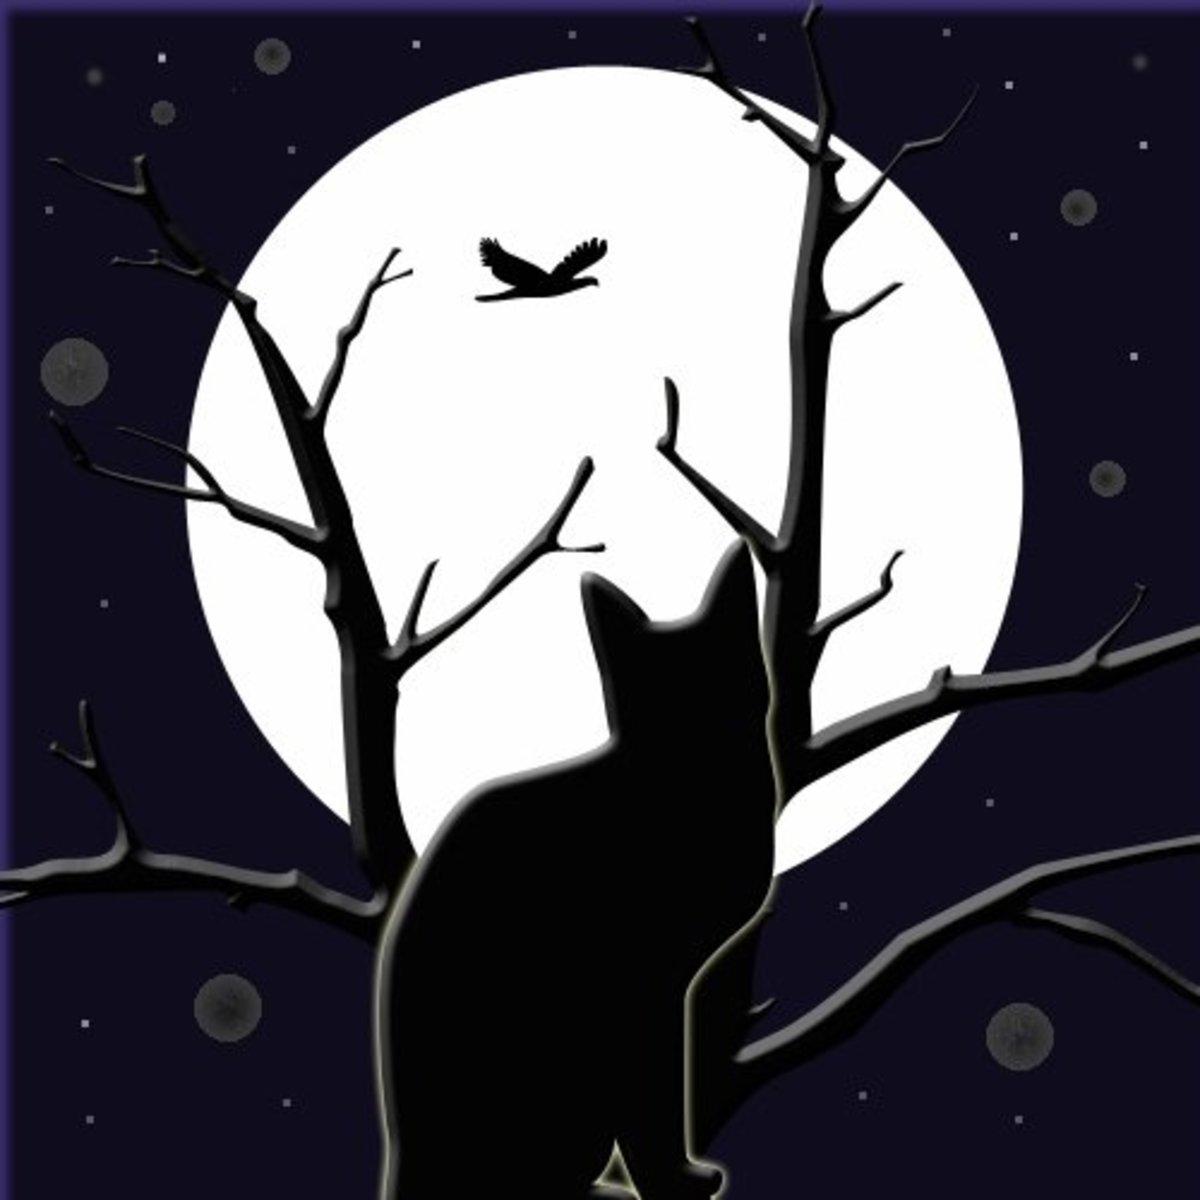 A black cat silhouette in a bare tree with a full moon image.